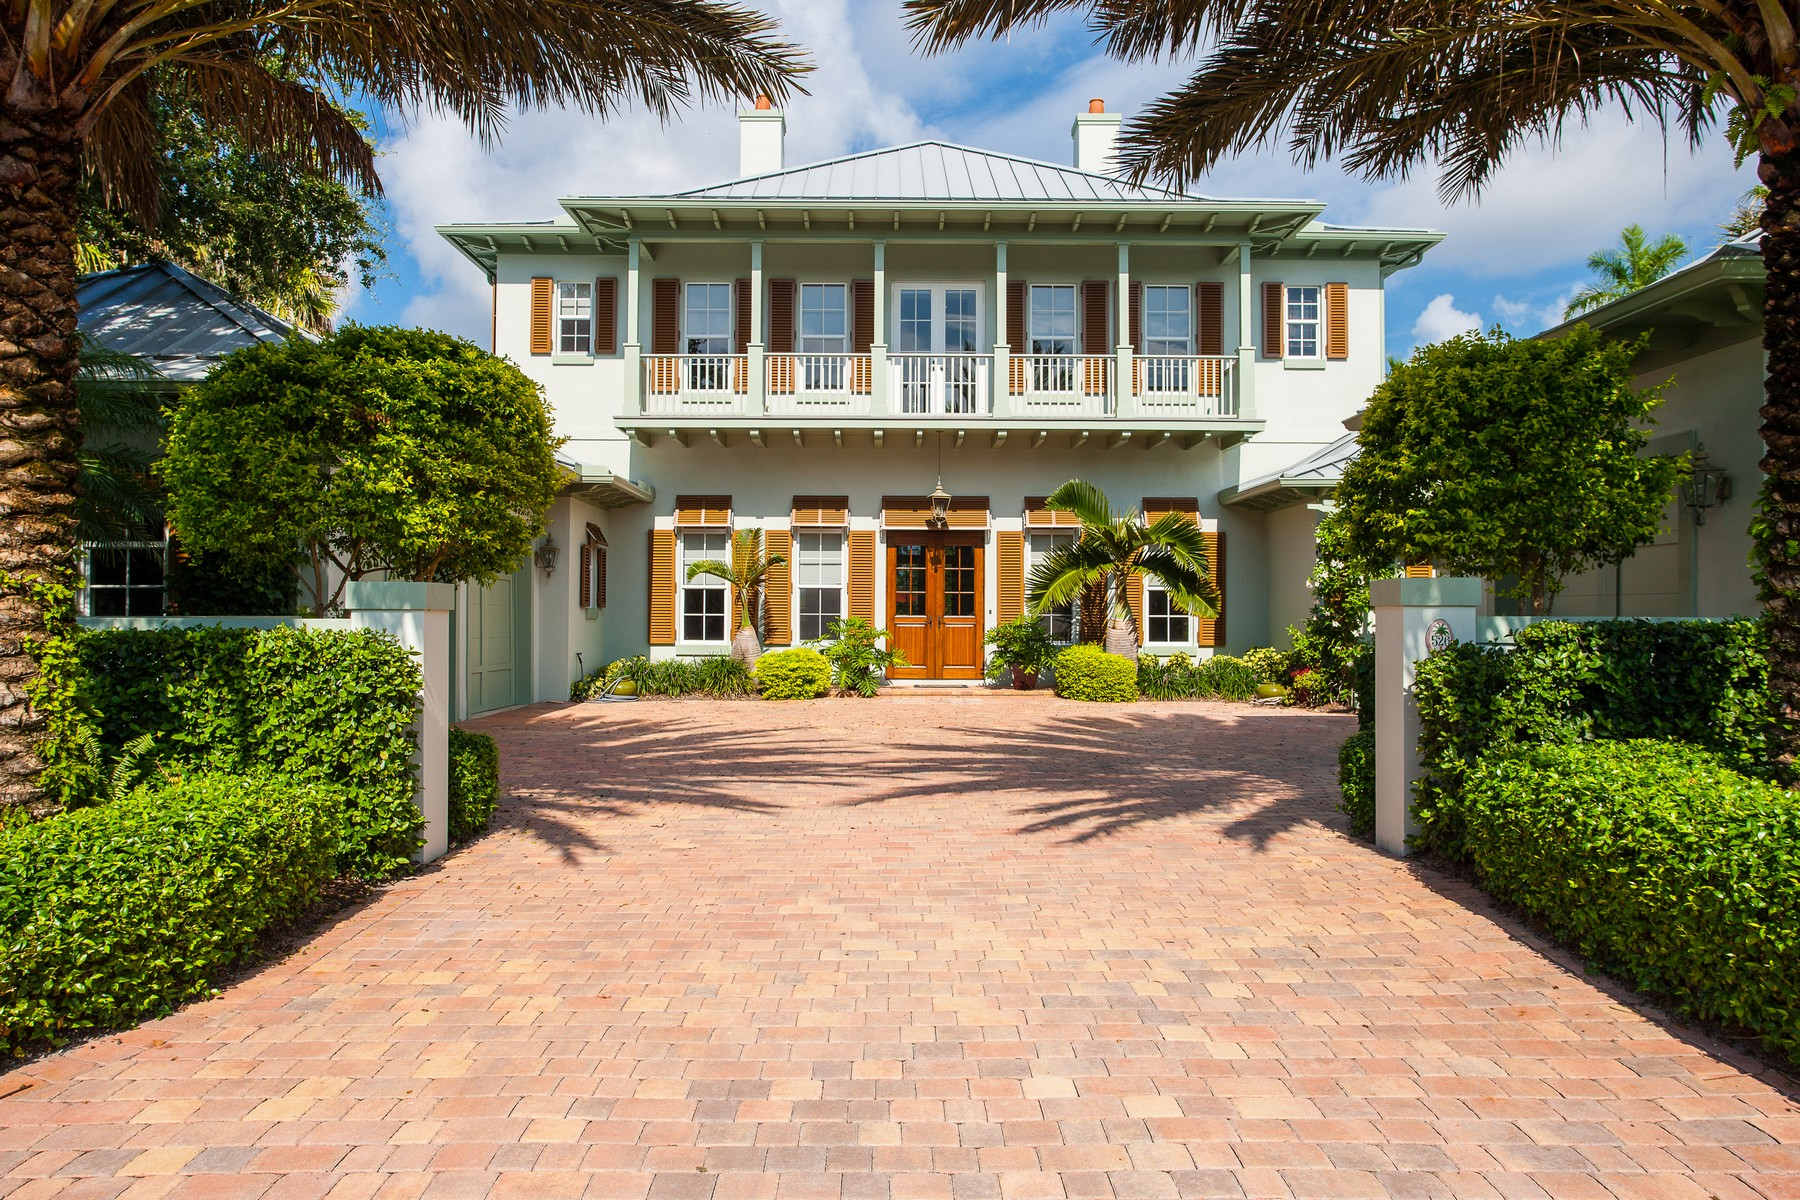 Single Family Home for Sale at Exquisite pool home in Palm Island Plantation 526 Feather Palm Drive Vero Beach, Florida 32963 United States